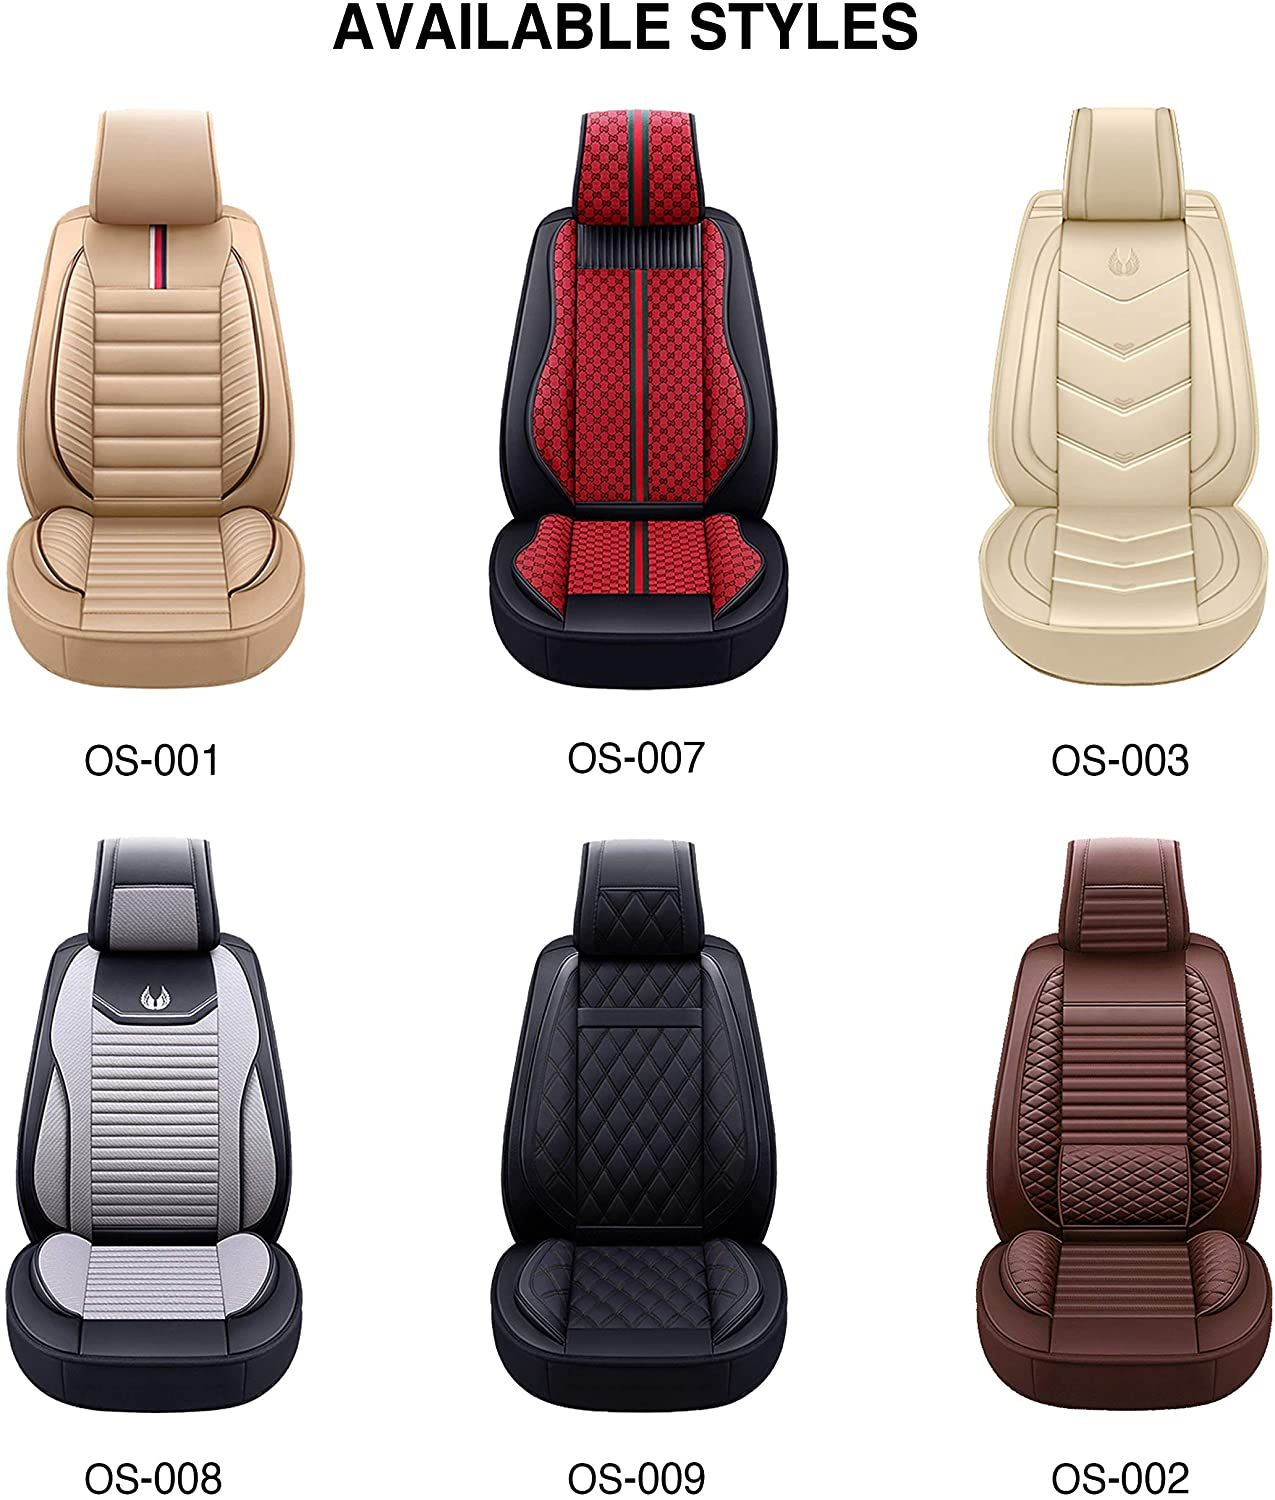 Oasis Auto Leather Car Seat Covers Faux Leatherette Automotive Vehicle Cushion Cover For Cars Suv Leather Car Seat Covers Seat Covers Car Seats